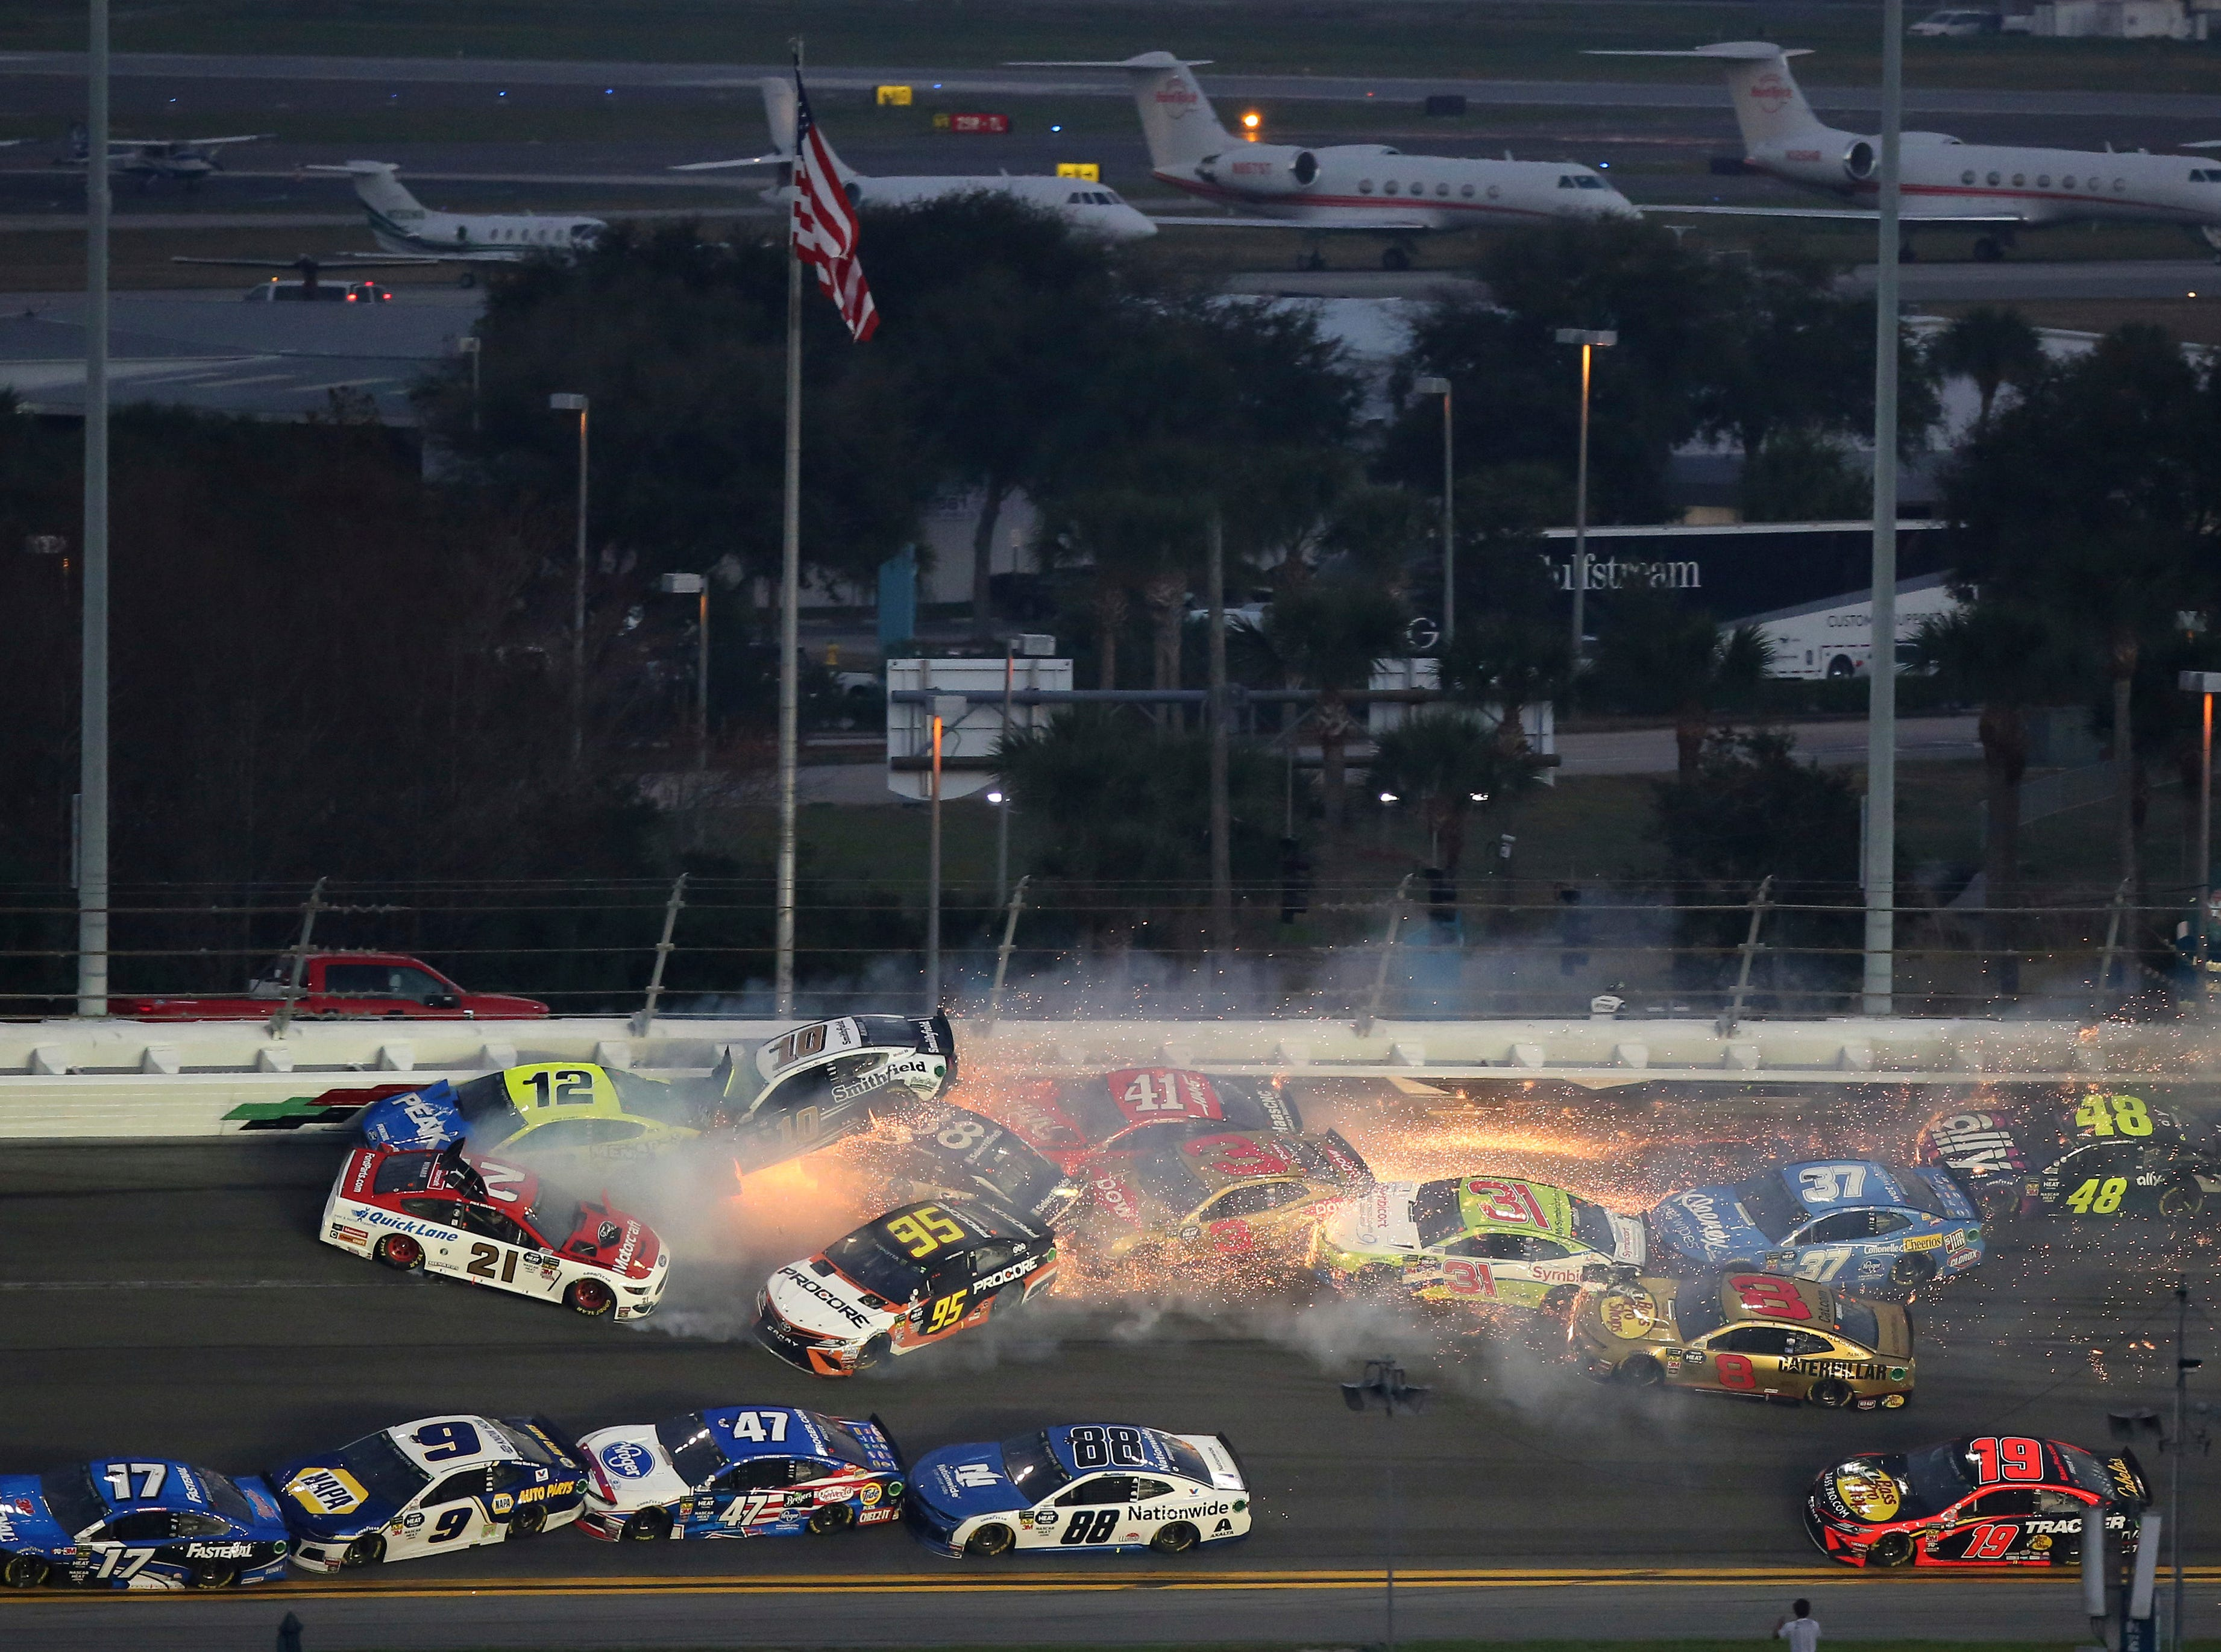 Multiple cars crash during a NASCAR Daytona 500 auto race Sunday, Feb. 17, 2019, at Daytona International Speedway.